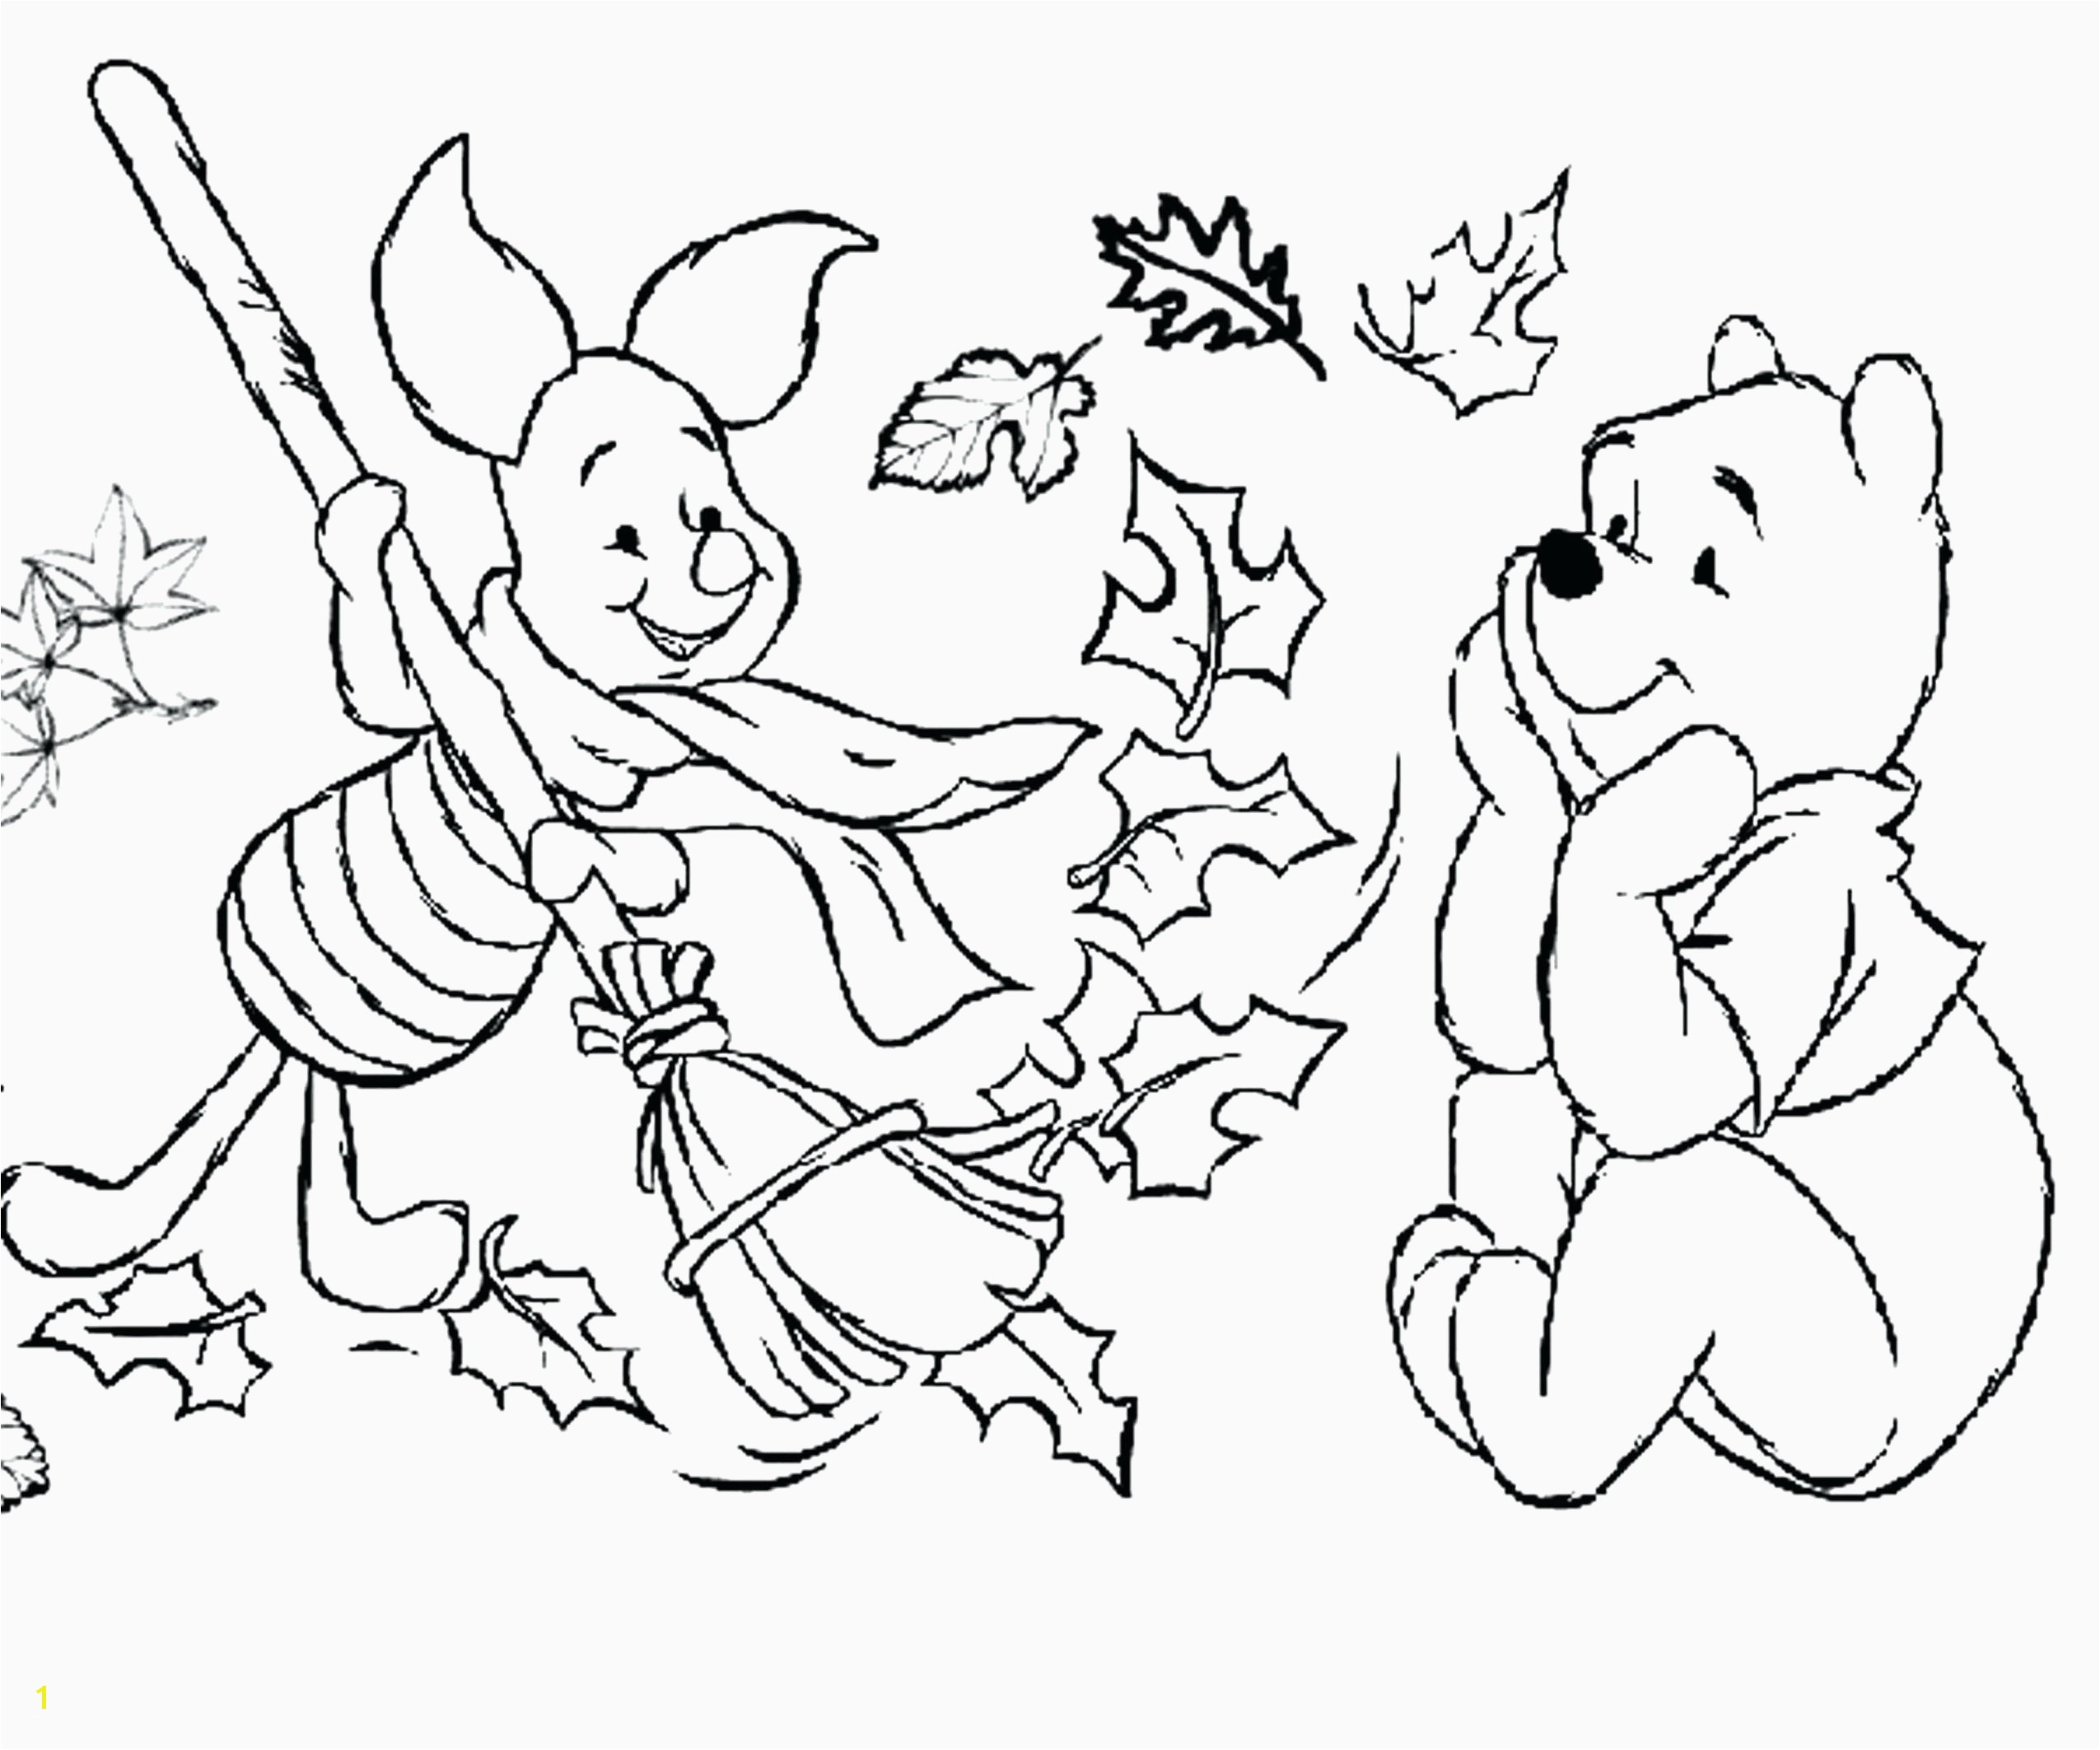 Blue Avatar Coloring Pages Kindergarten Coloring Pages Children Coloring Pages Unique Kids